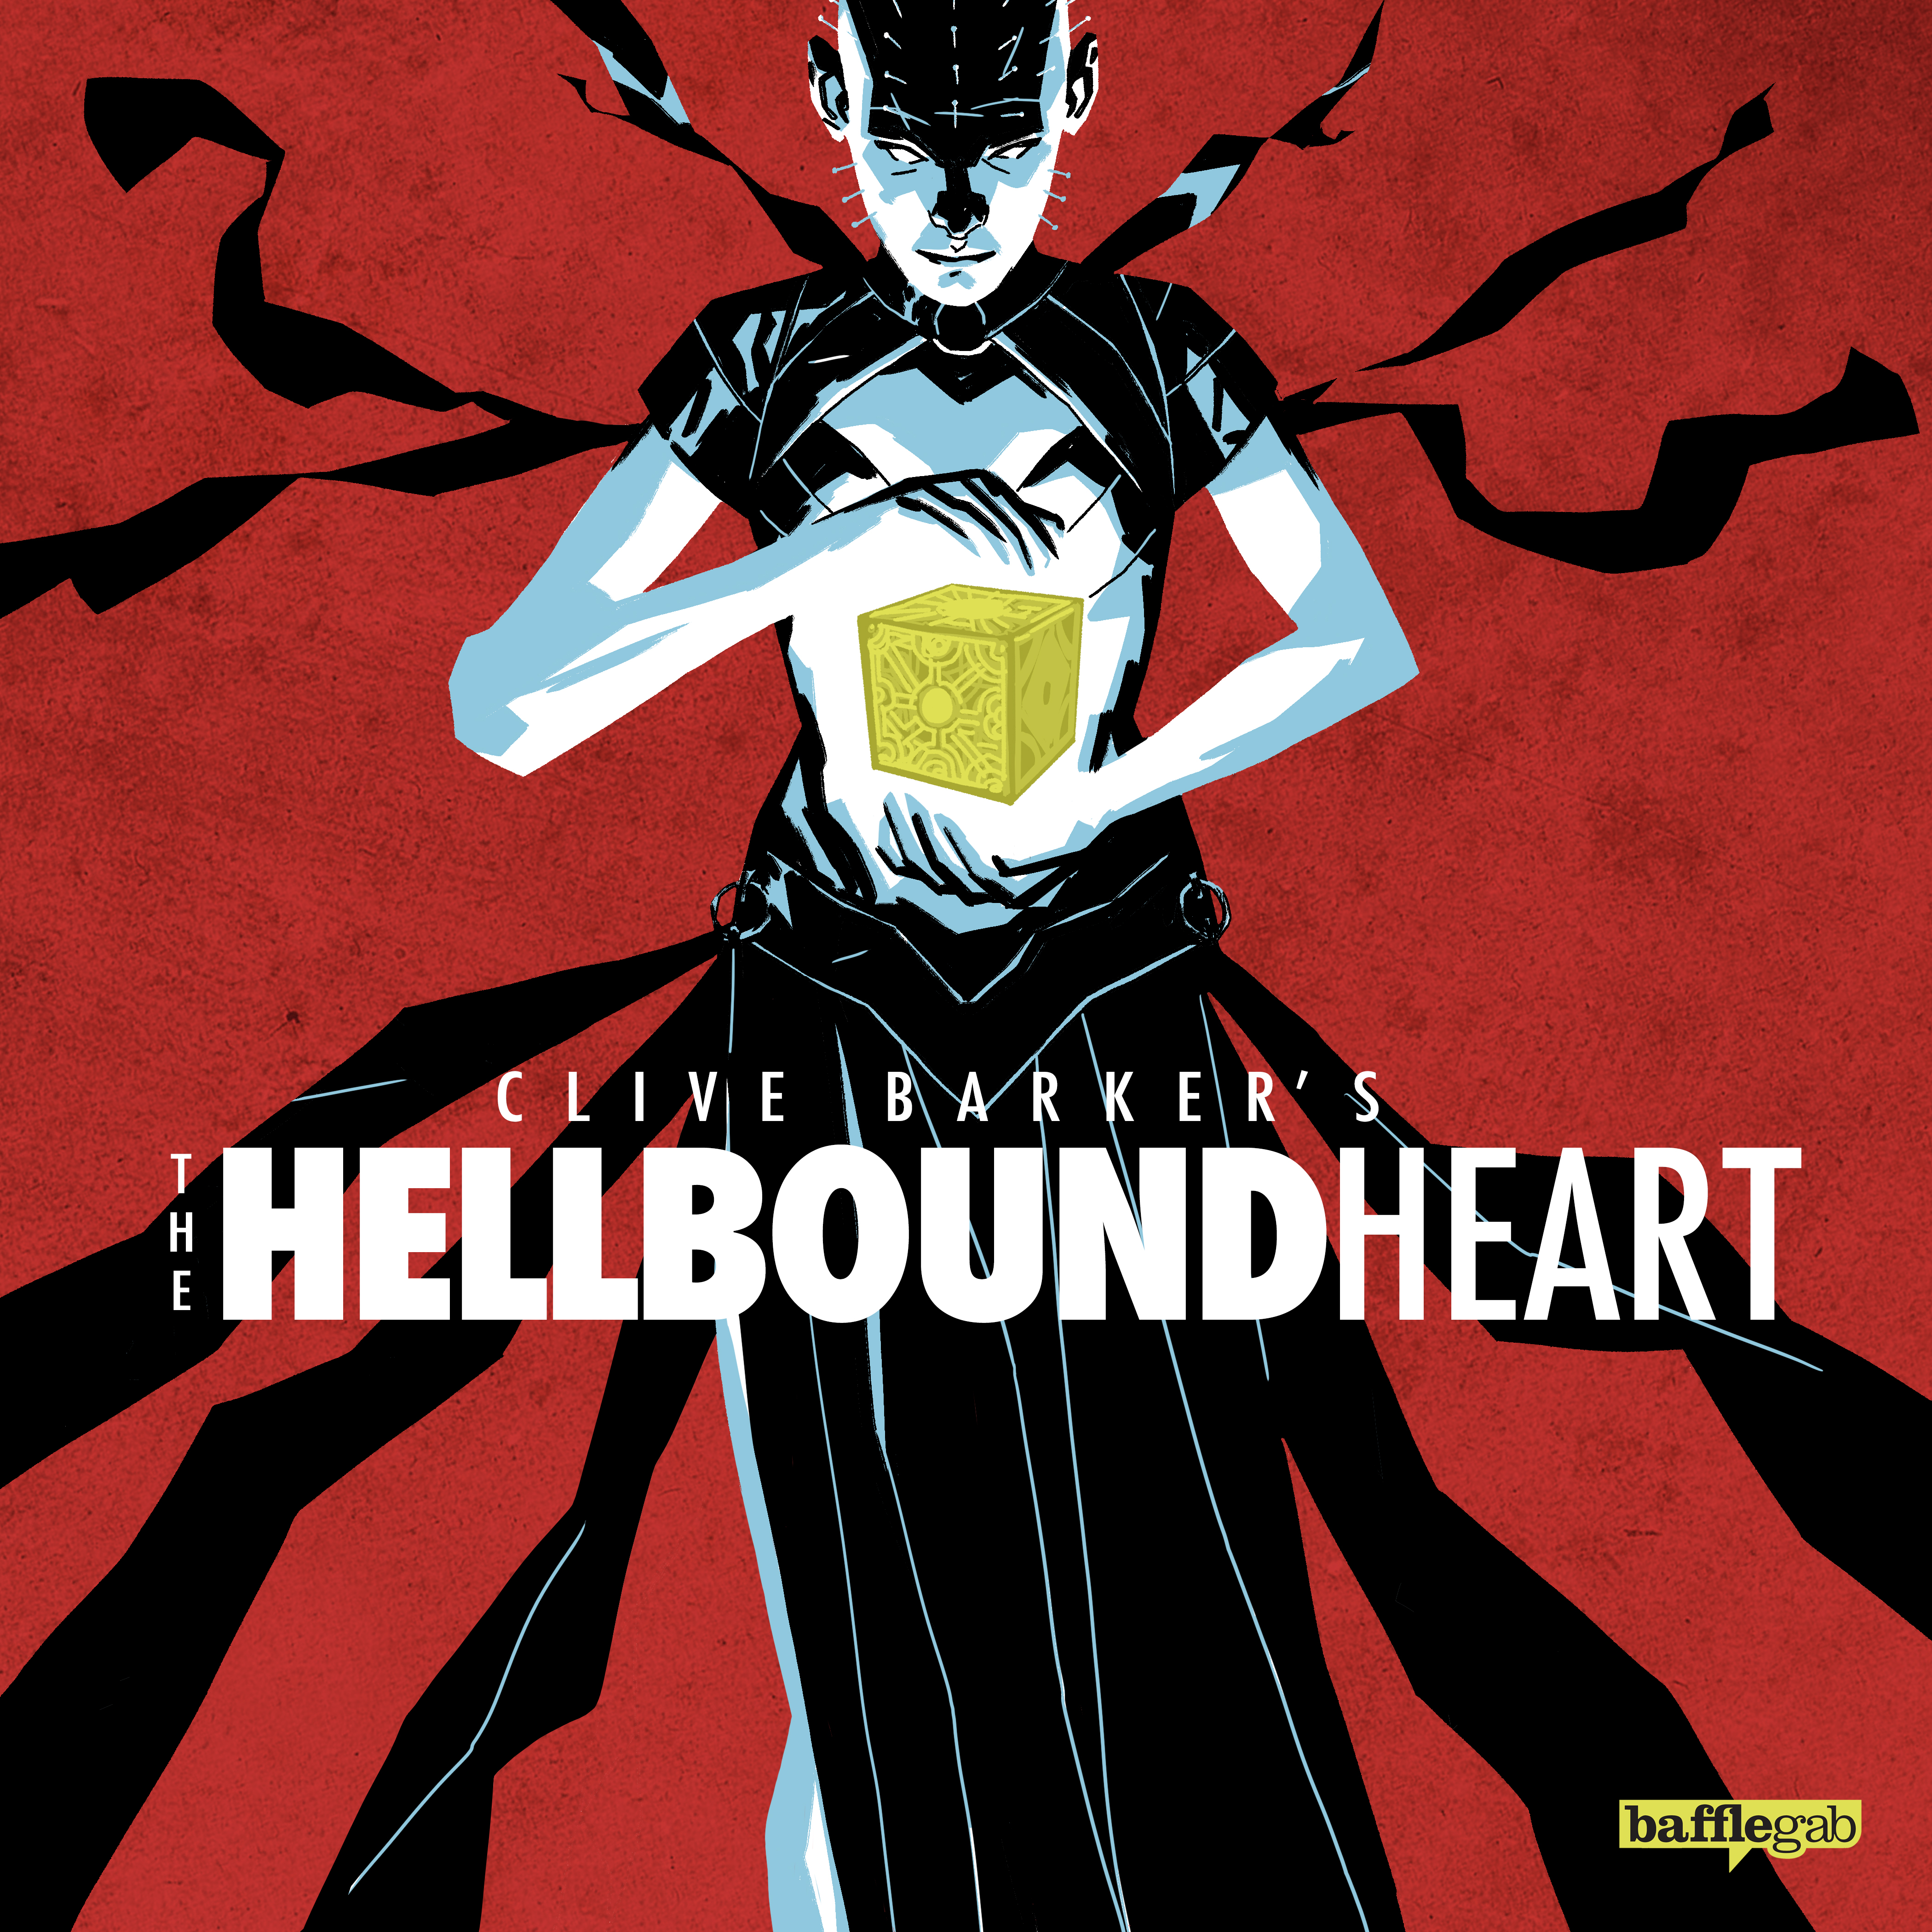 The Hellbound Heart audio review: Bafflegab takes on Clive Barker's classic